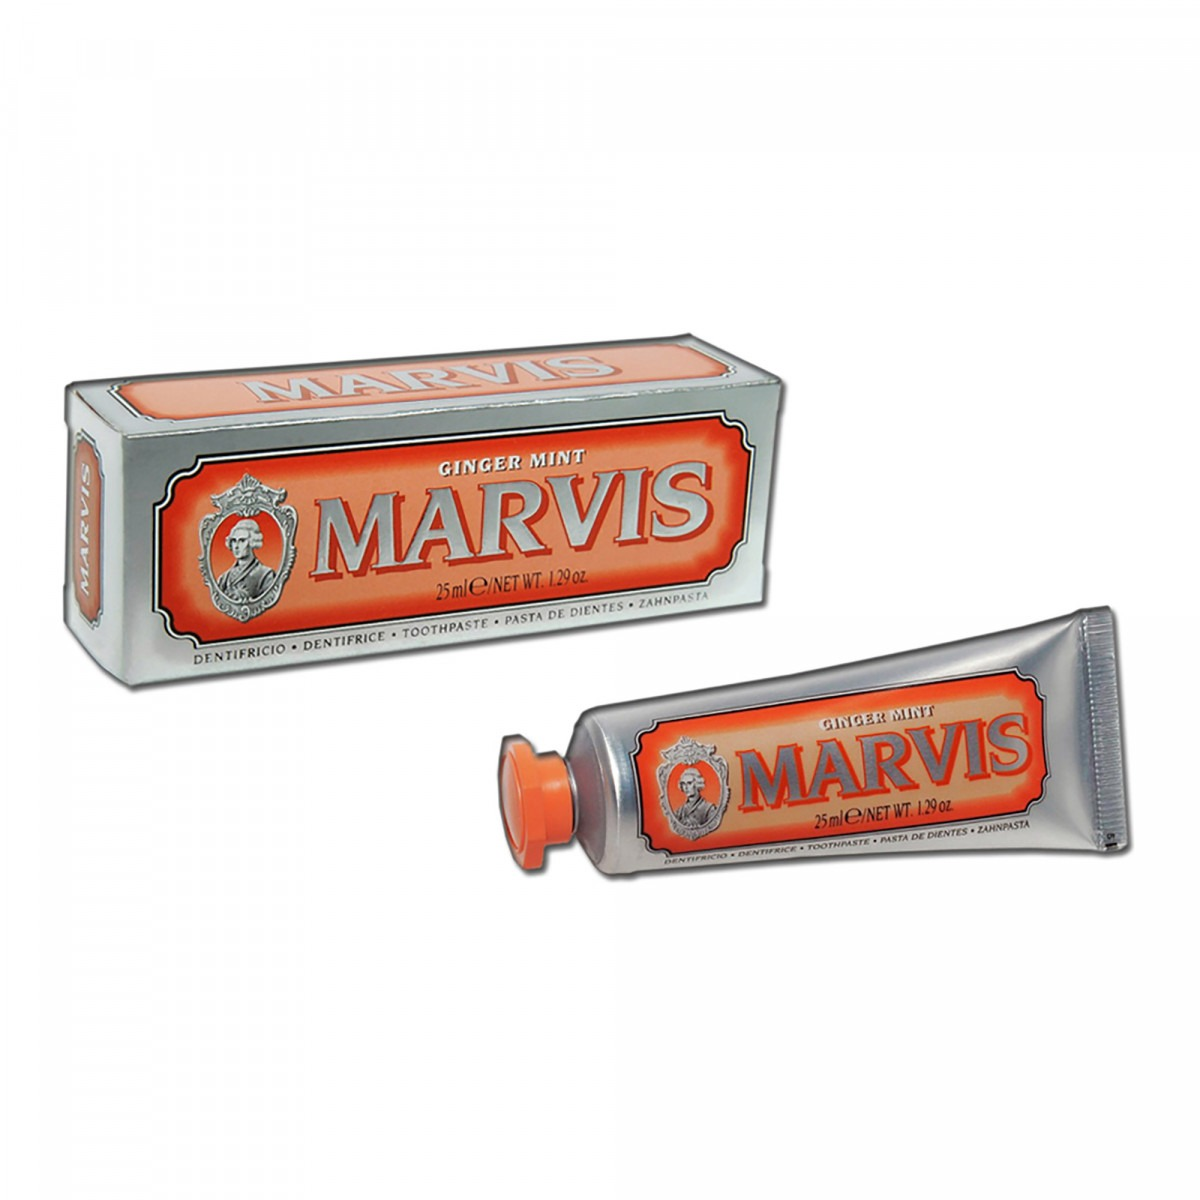 Marvis toothpaste ginger mint 25 ml